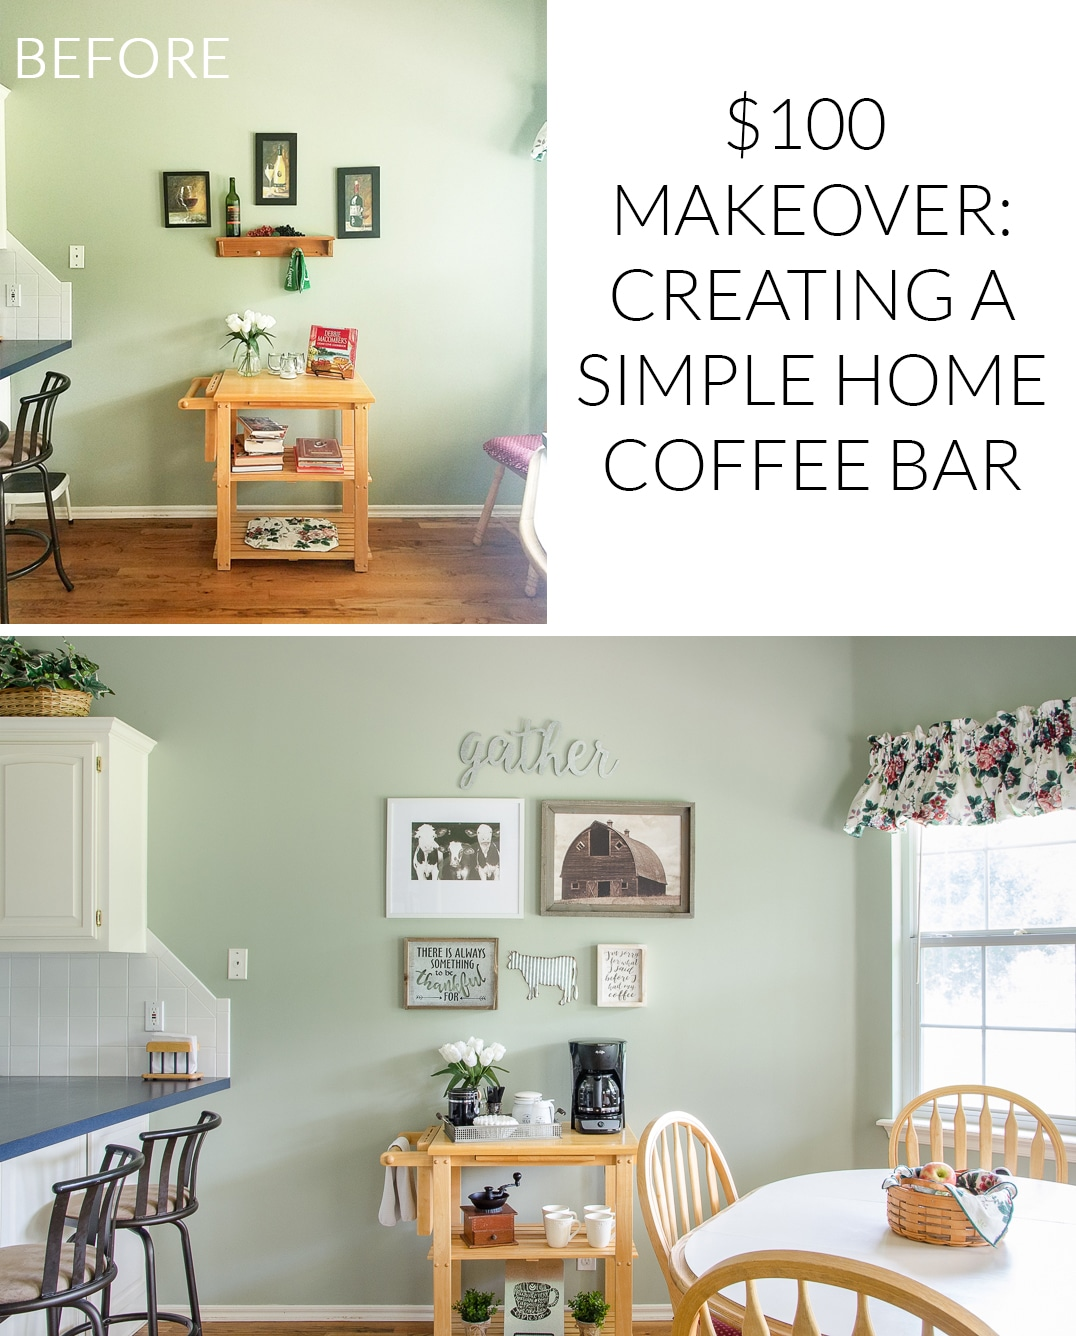 Tips for Creating a Simple Home Coffee Bar On a Budget